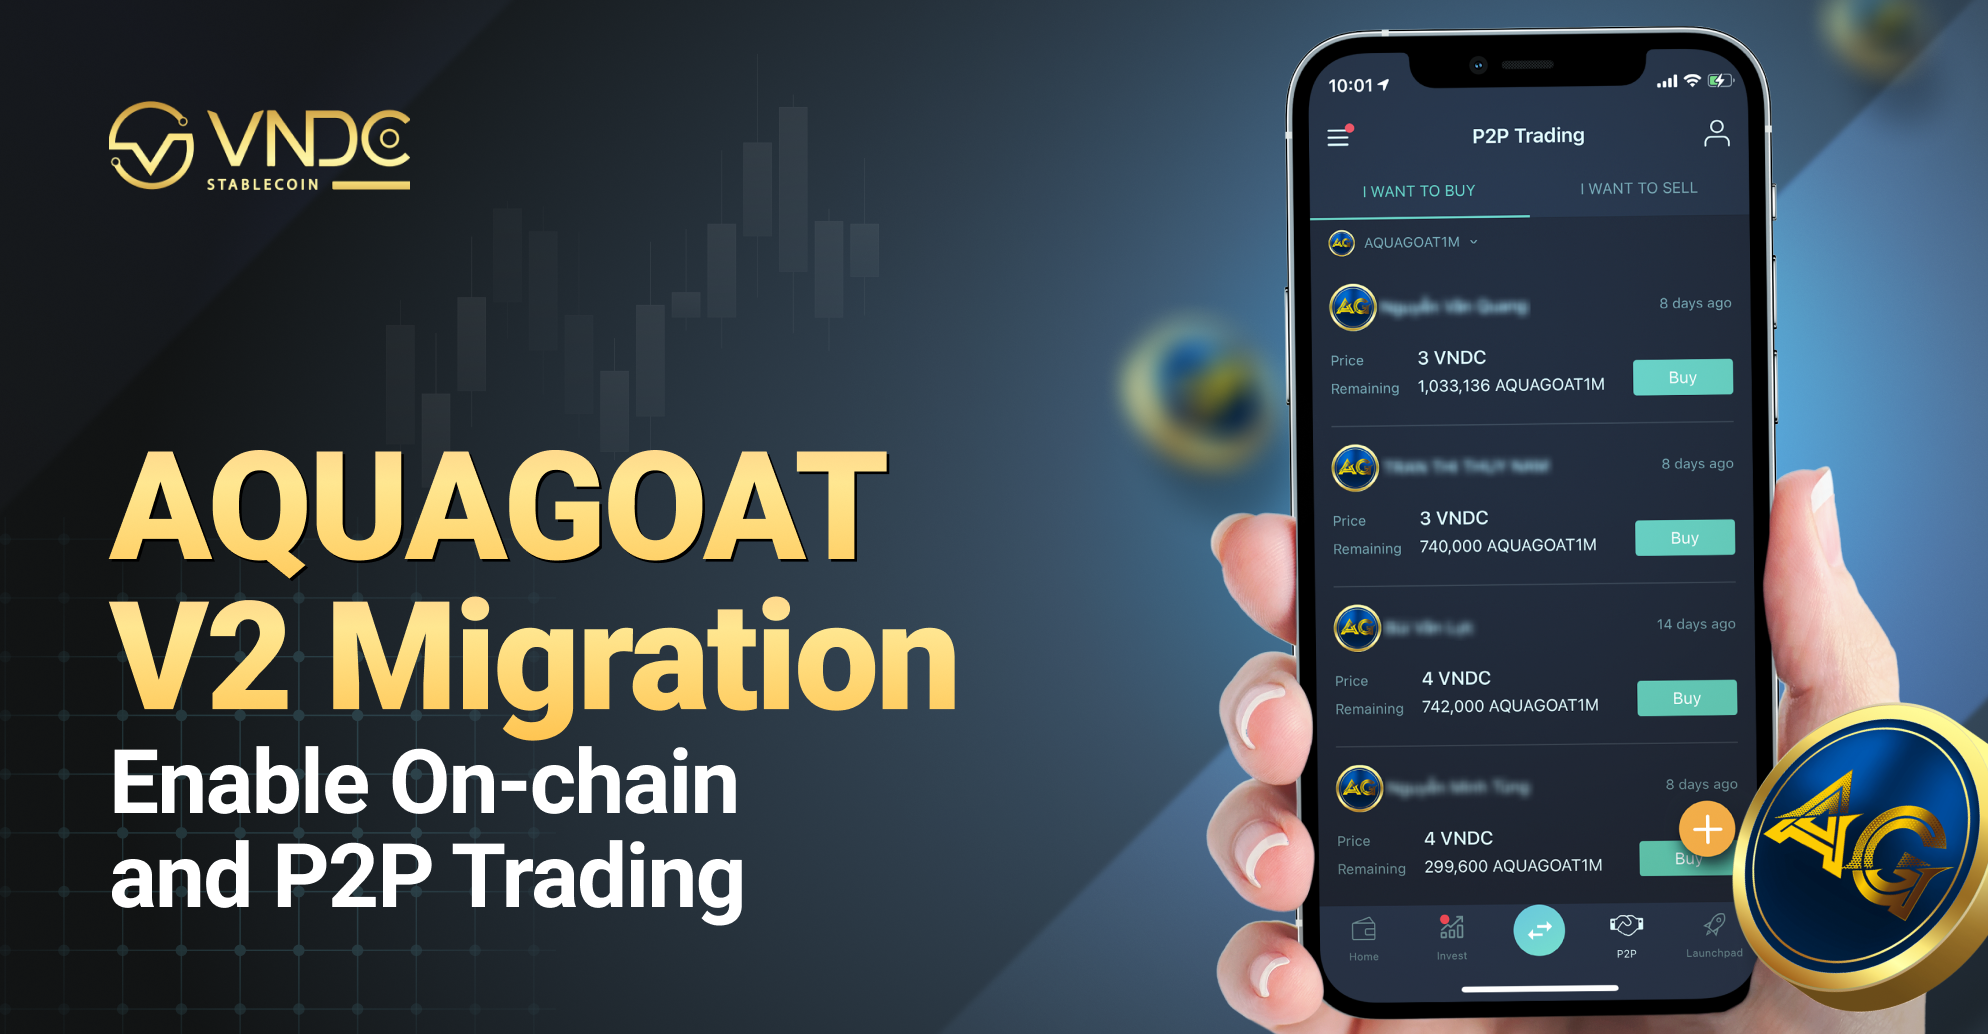 AQUAGOAT V2 Migration, Enable On-chain and P2P trading